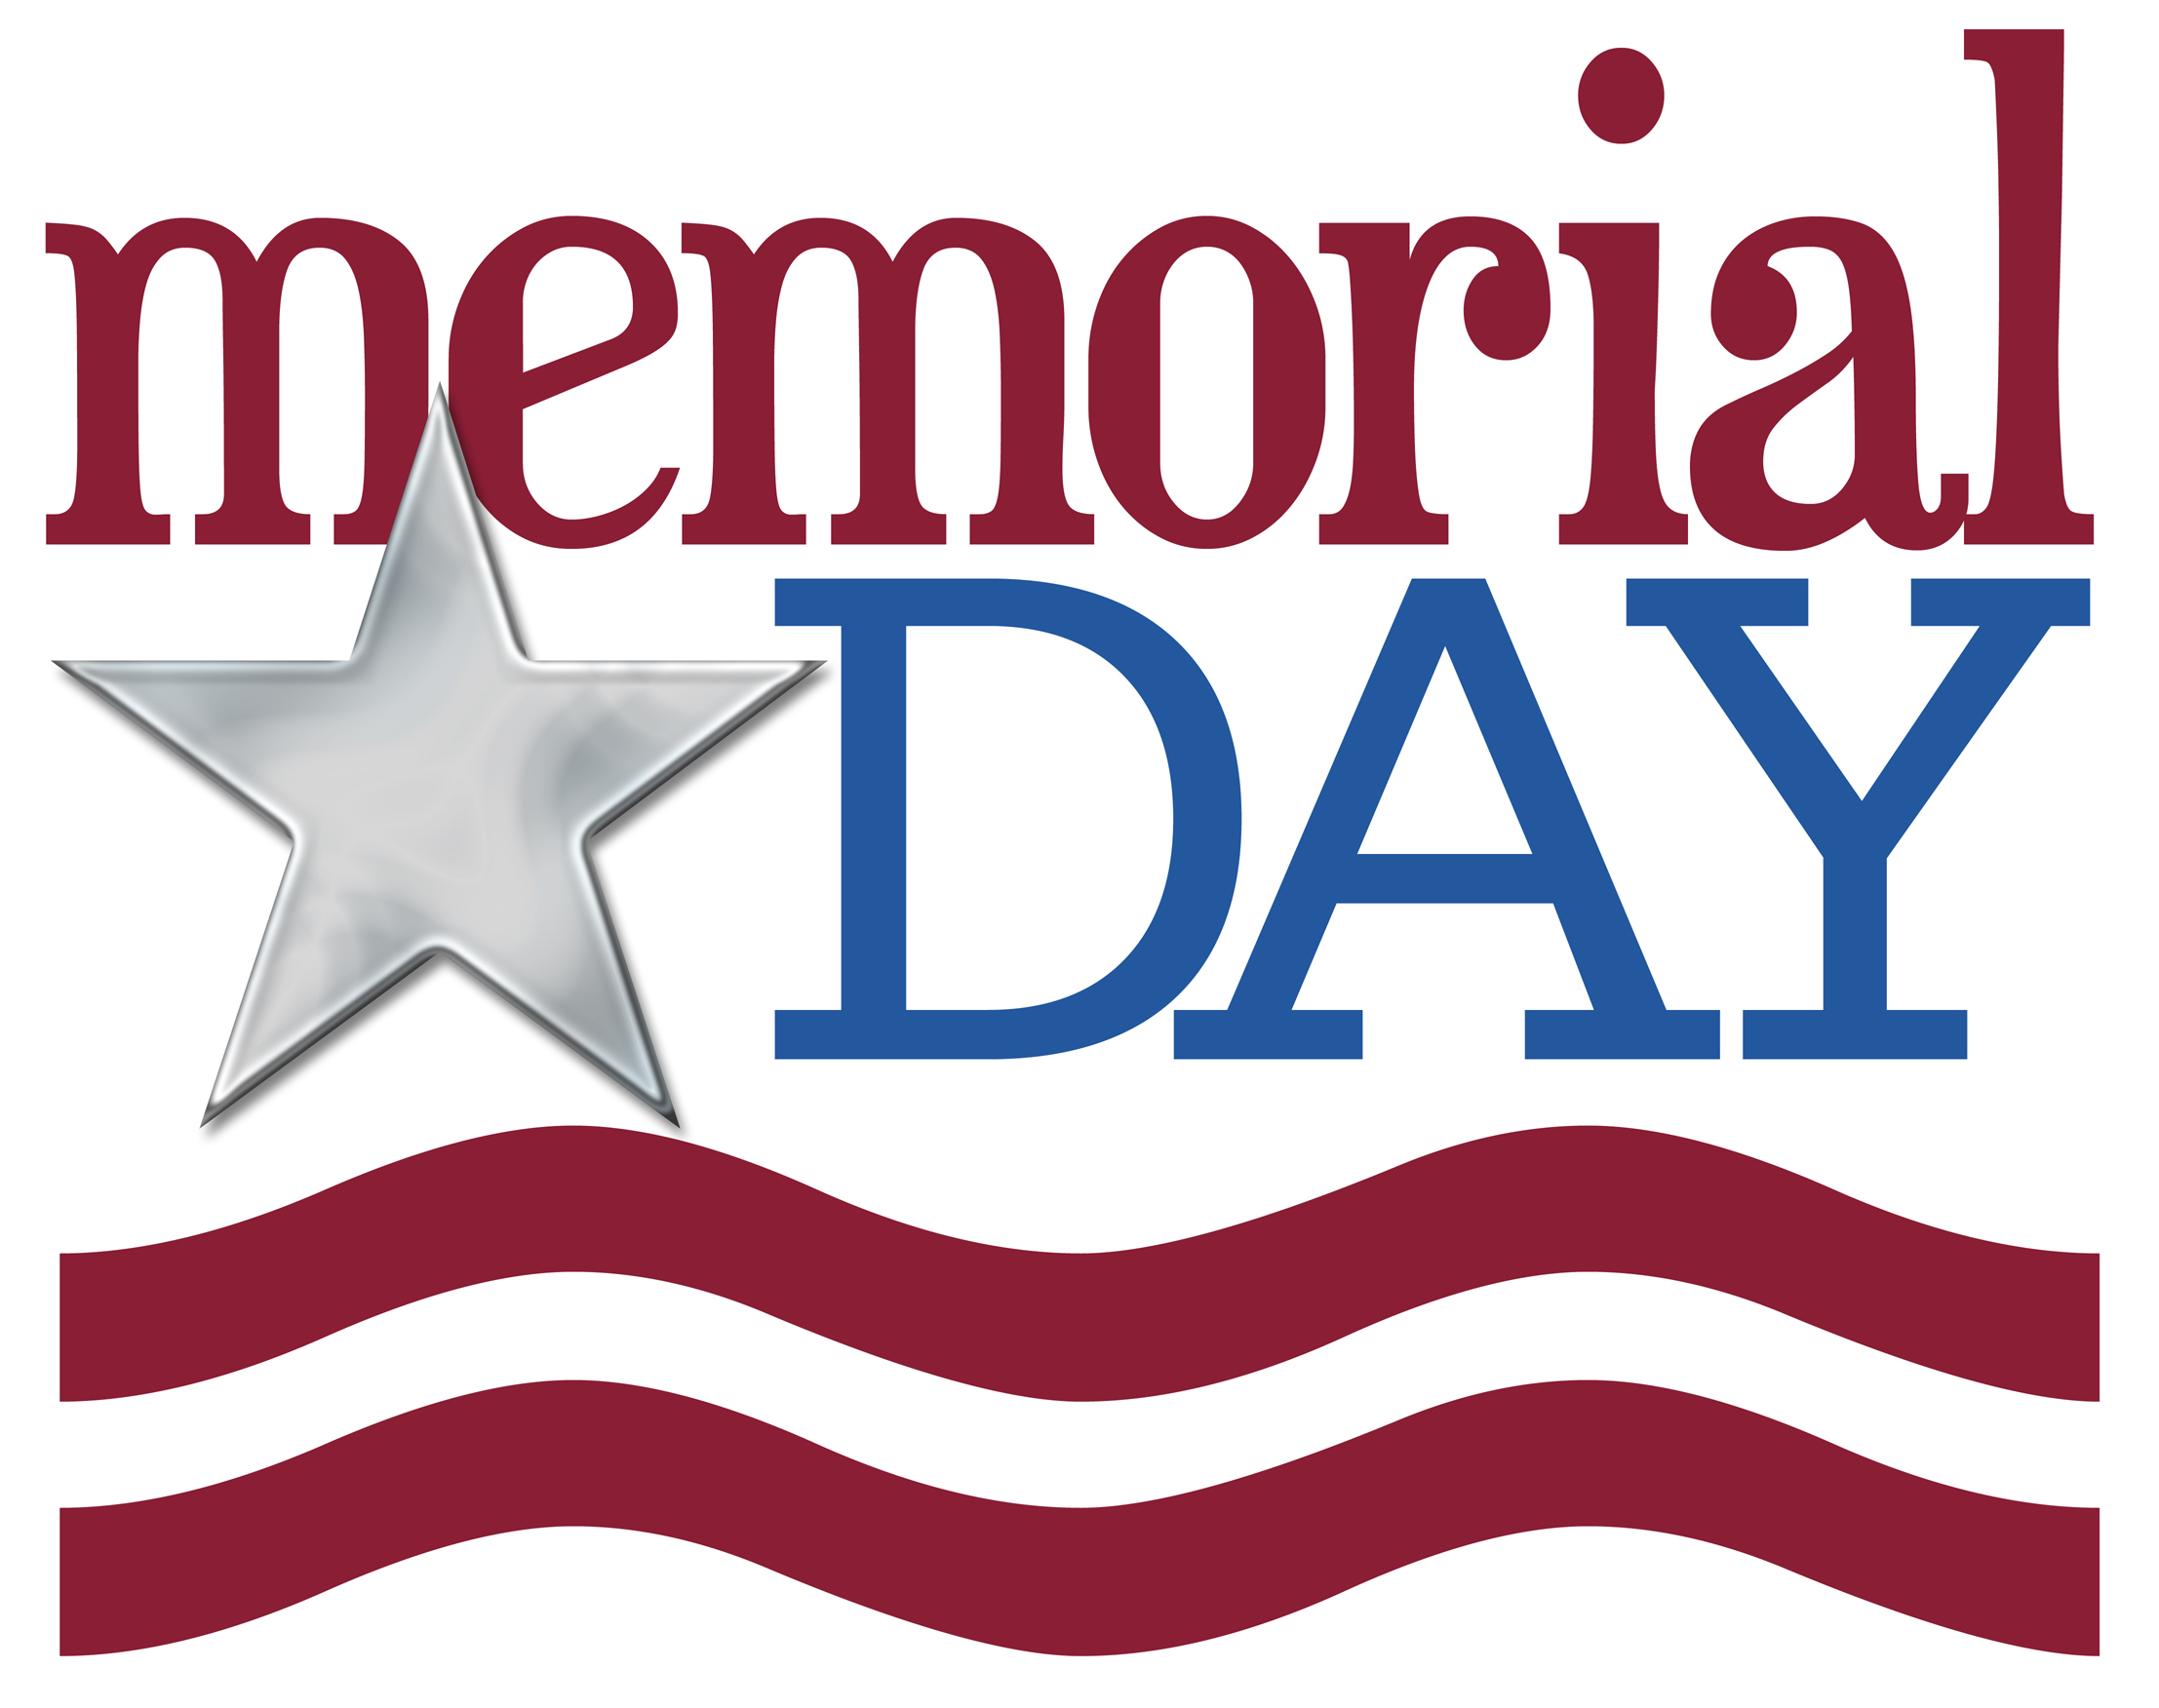 Image of May Day Clip Art Happy Memorial Day Clipart Free.